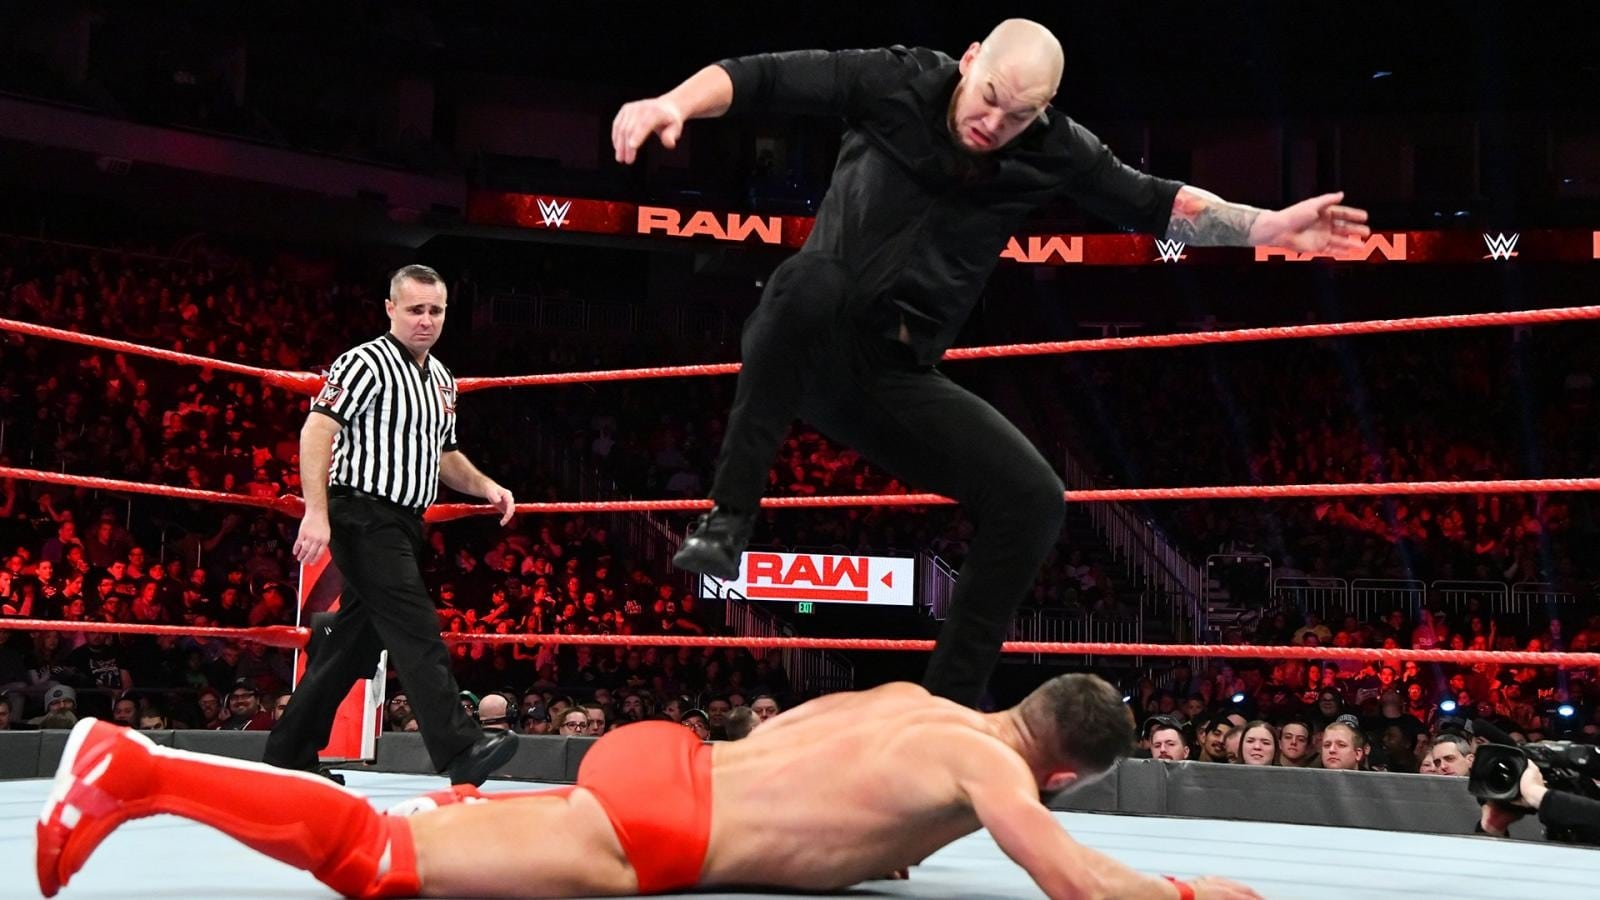 WWE Raw - Season 26 Episode 48 : November 26, 2018 (Milwaukee, WI) (1970)